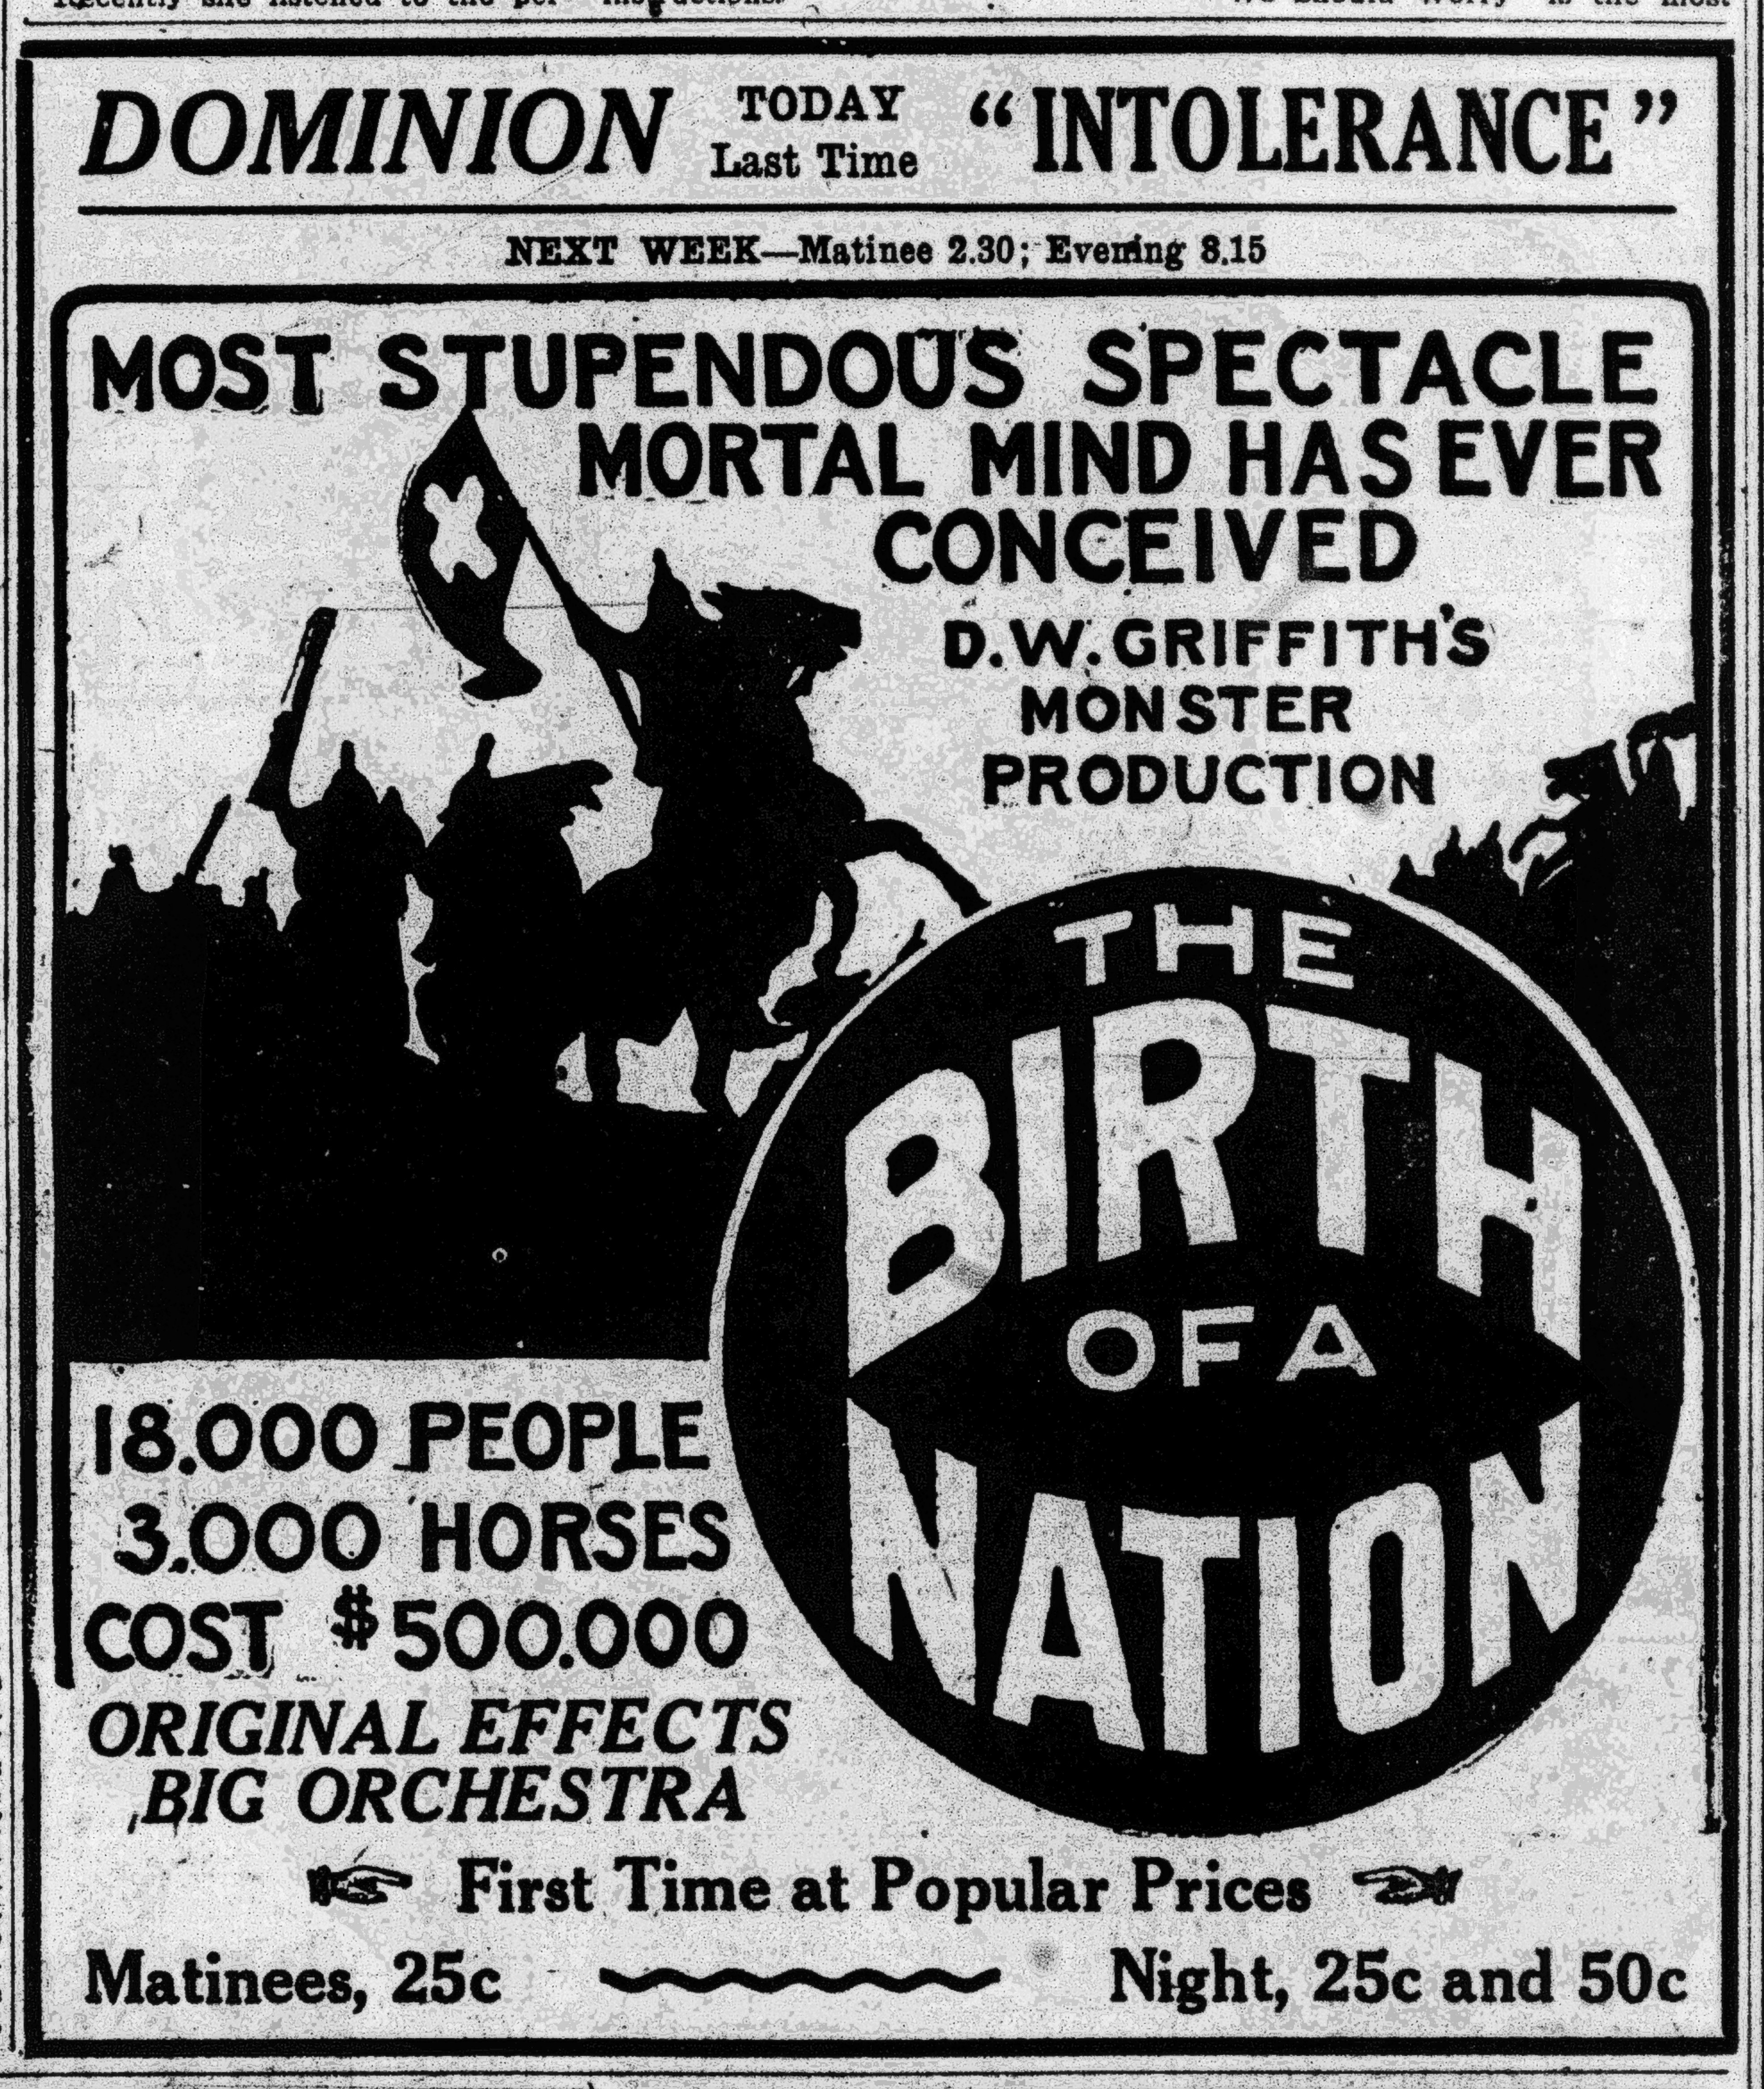 the birth of a nation at the dominion theatre advertisement